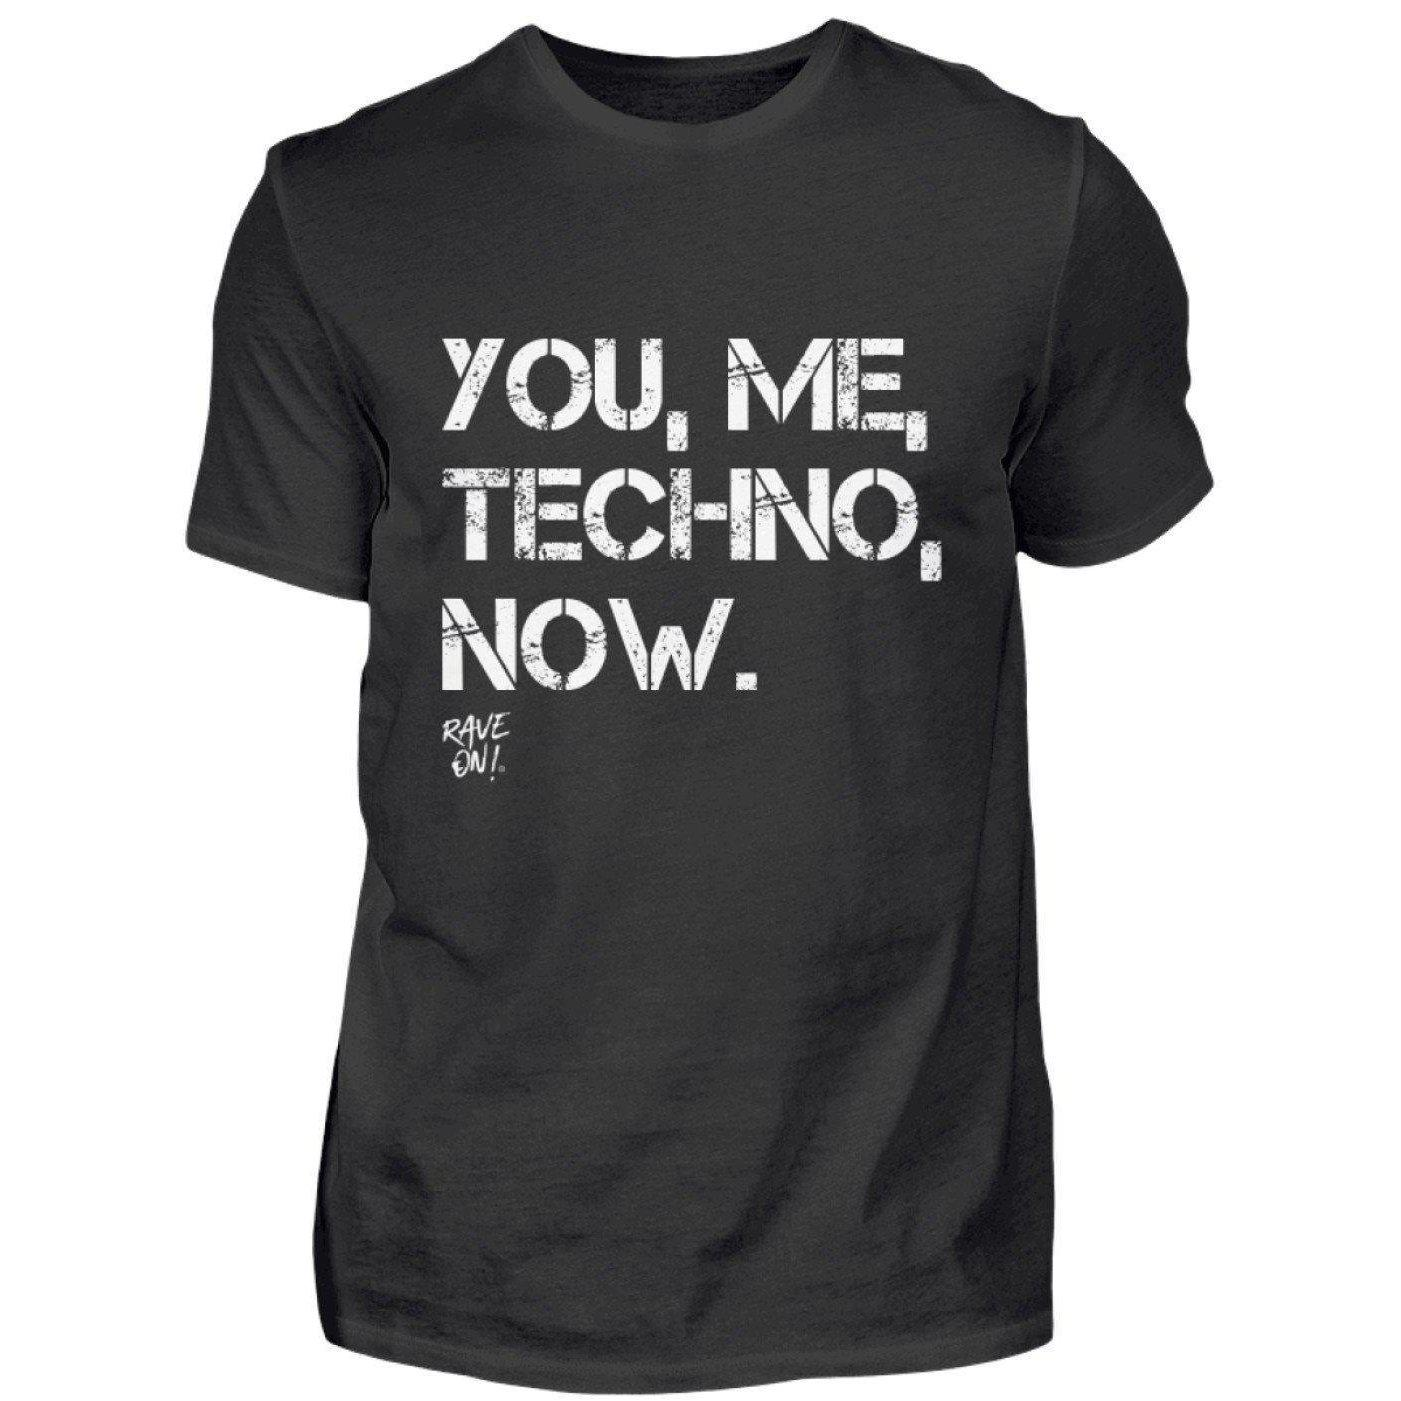 YOU, ME, TECHNO, NOW. - Rave On!® Shirt - Herren Herren Basic T-Shirt Schwarz / S - Rave On!® der Club & Techno Szene Shop für Coole Junge Mode Streetwear Style & Fashion Outfits + Sexy Festival 420 Stuff